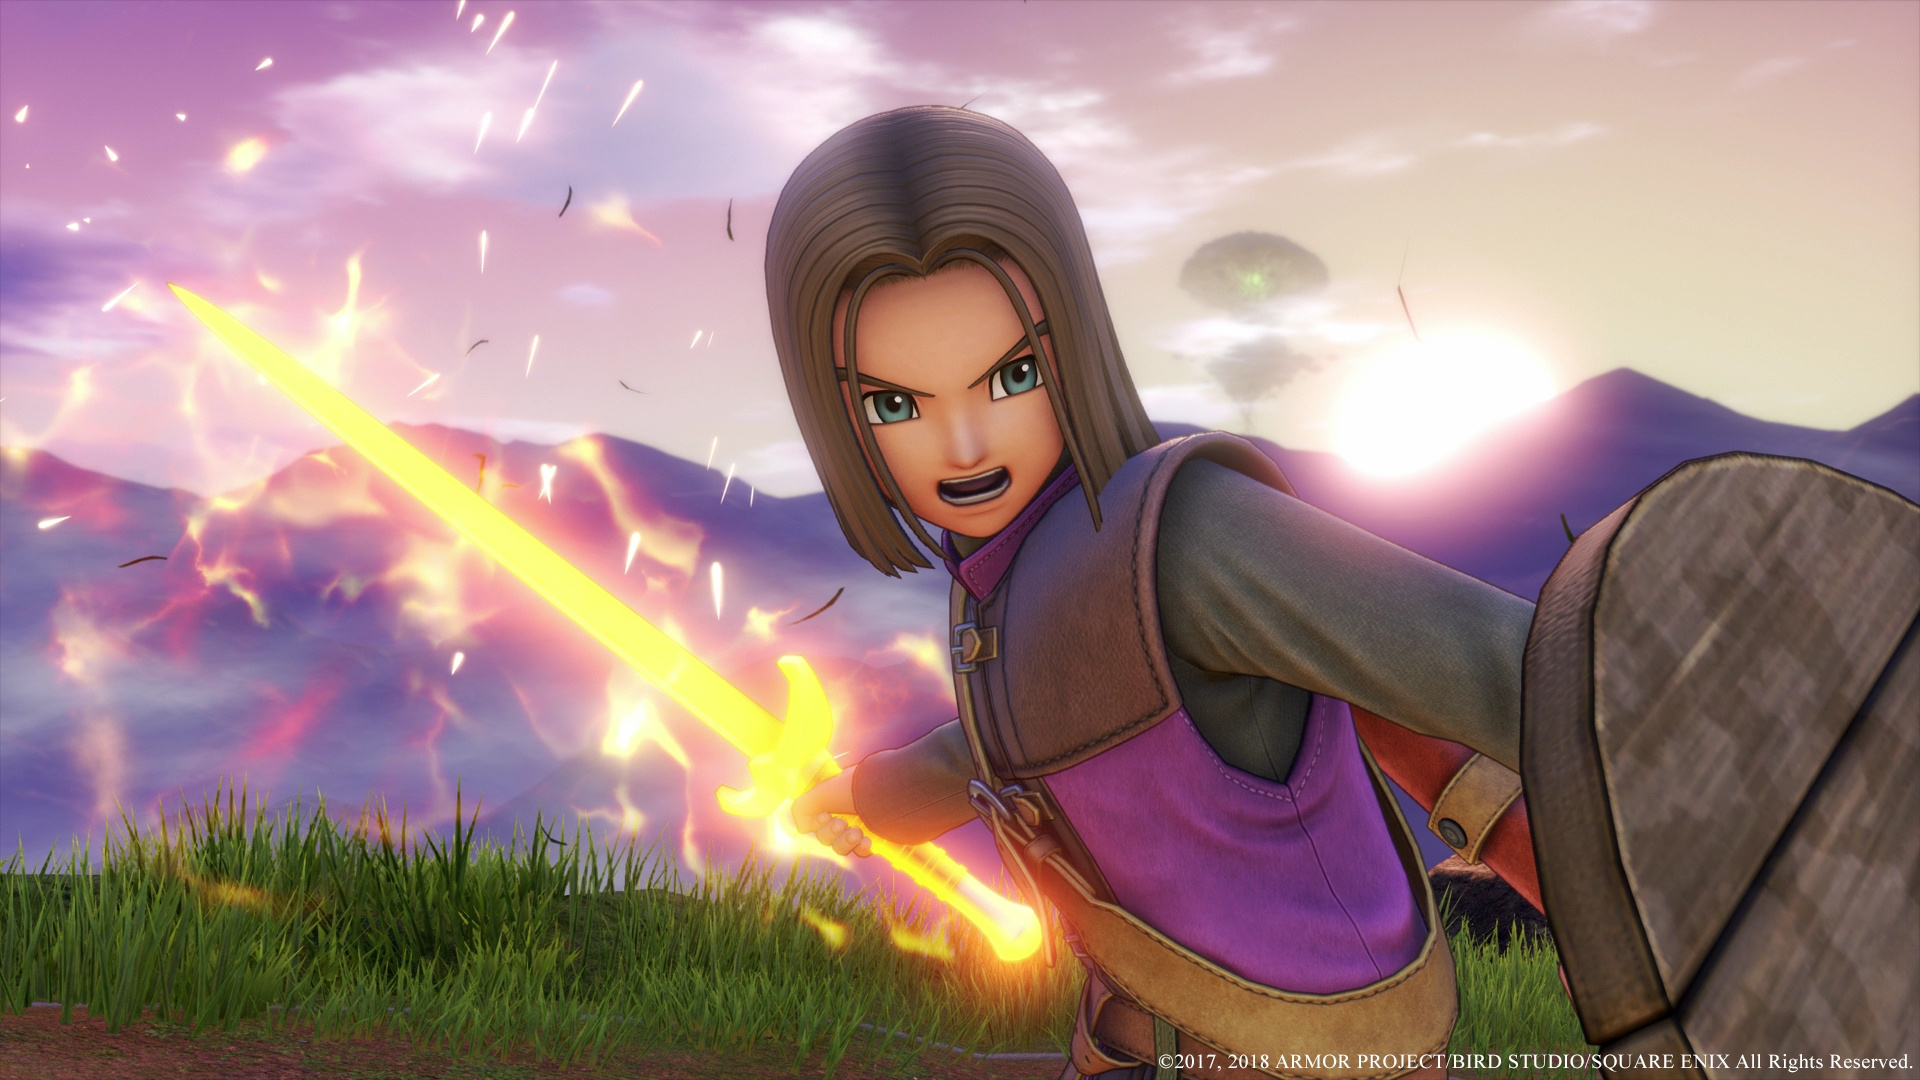 Japanese Charts: Dragon Quest XI S Fends Off Ghost Recon: Breakpoint To Stay Number One